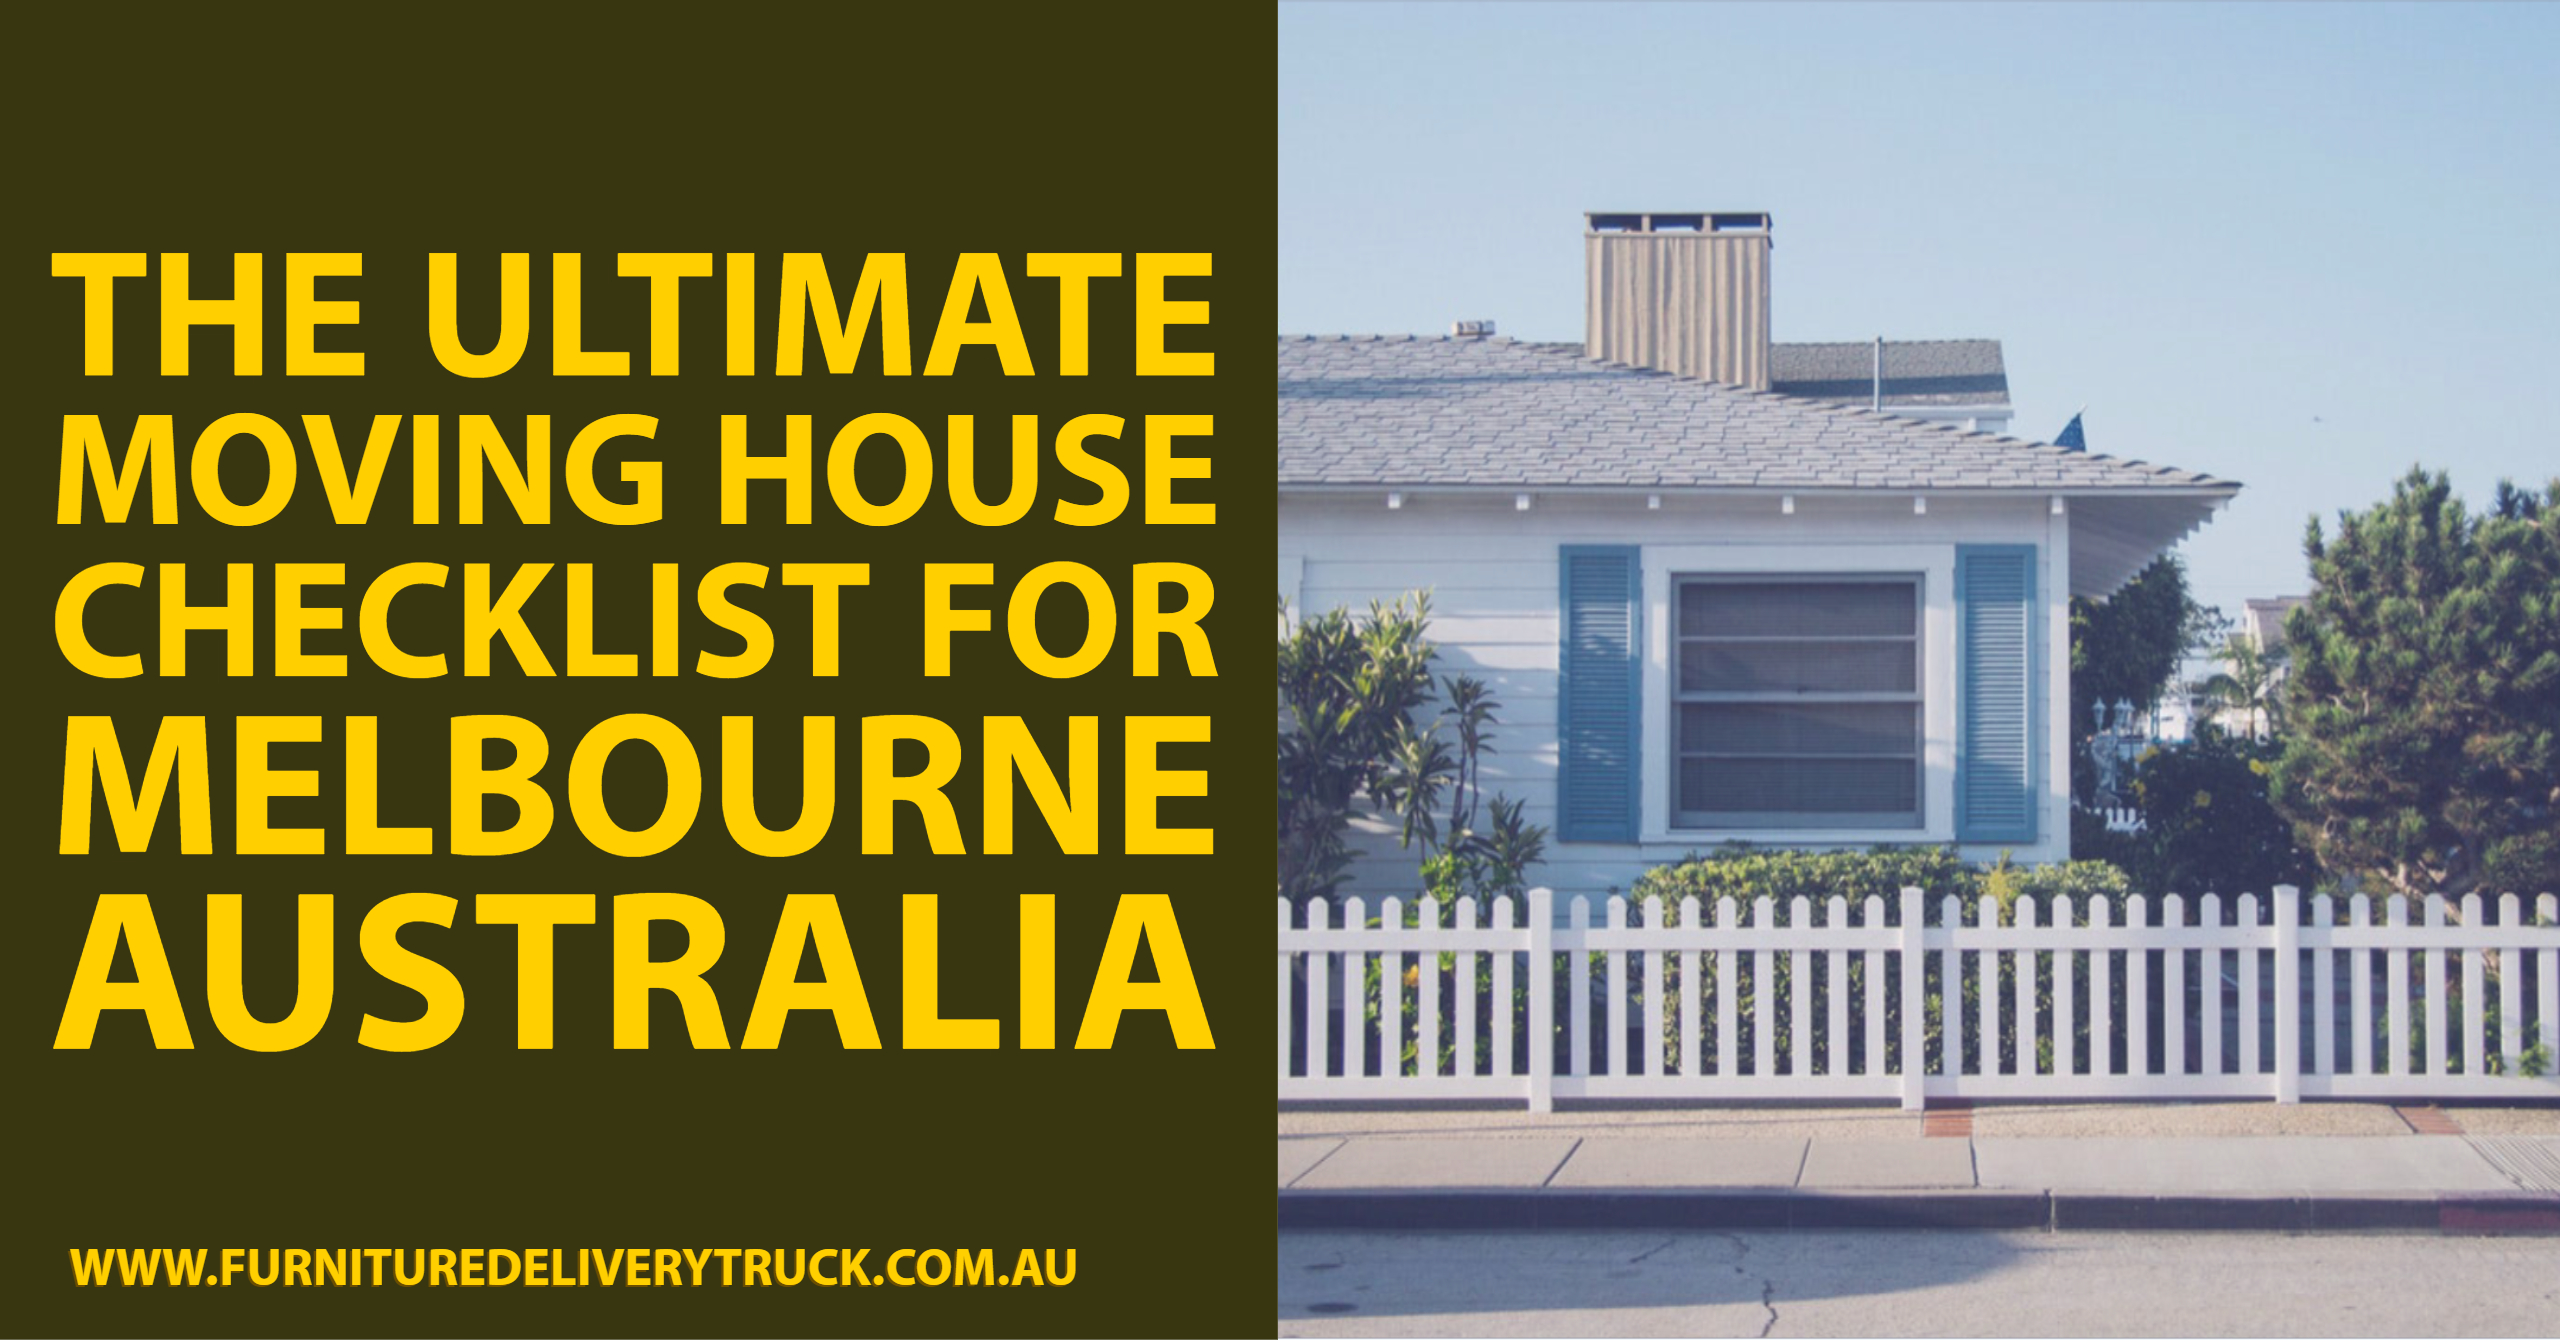 The Ultimate Moving House Checklist for Melbourne Australia